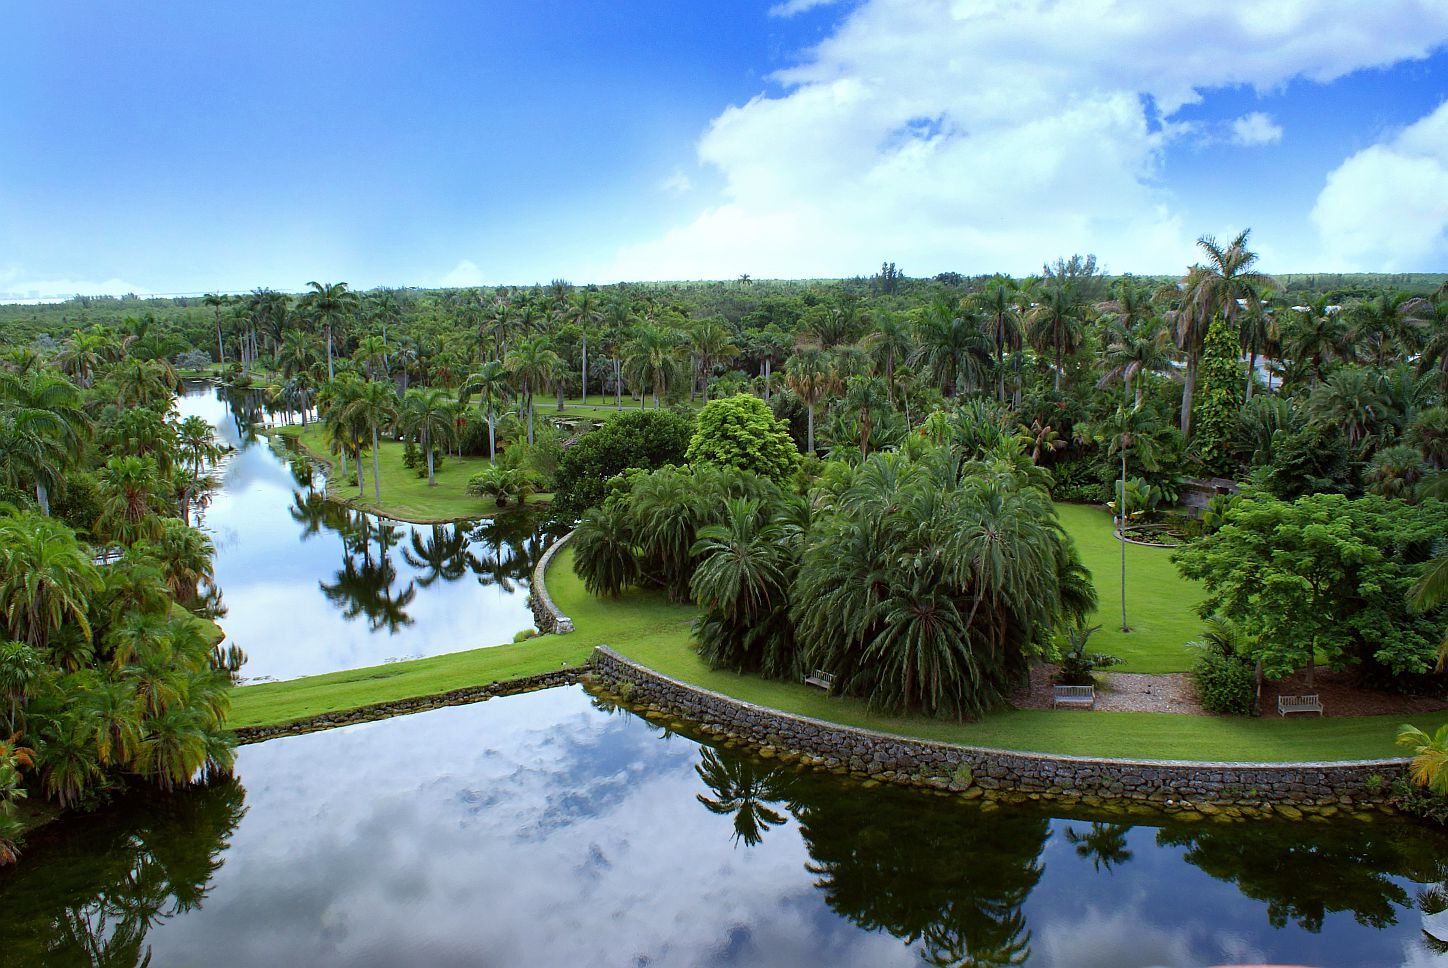 Fairchild Tropical Botanic Garden (Coral Gables, Florida)